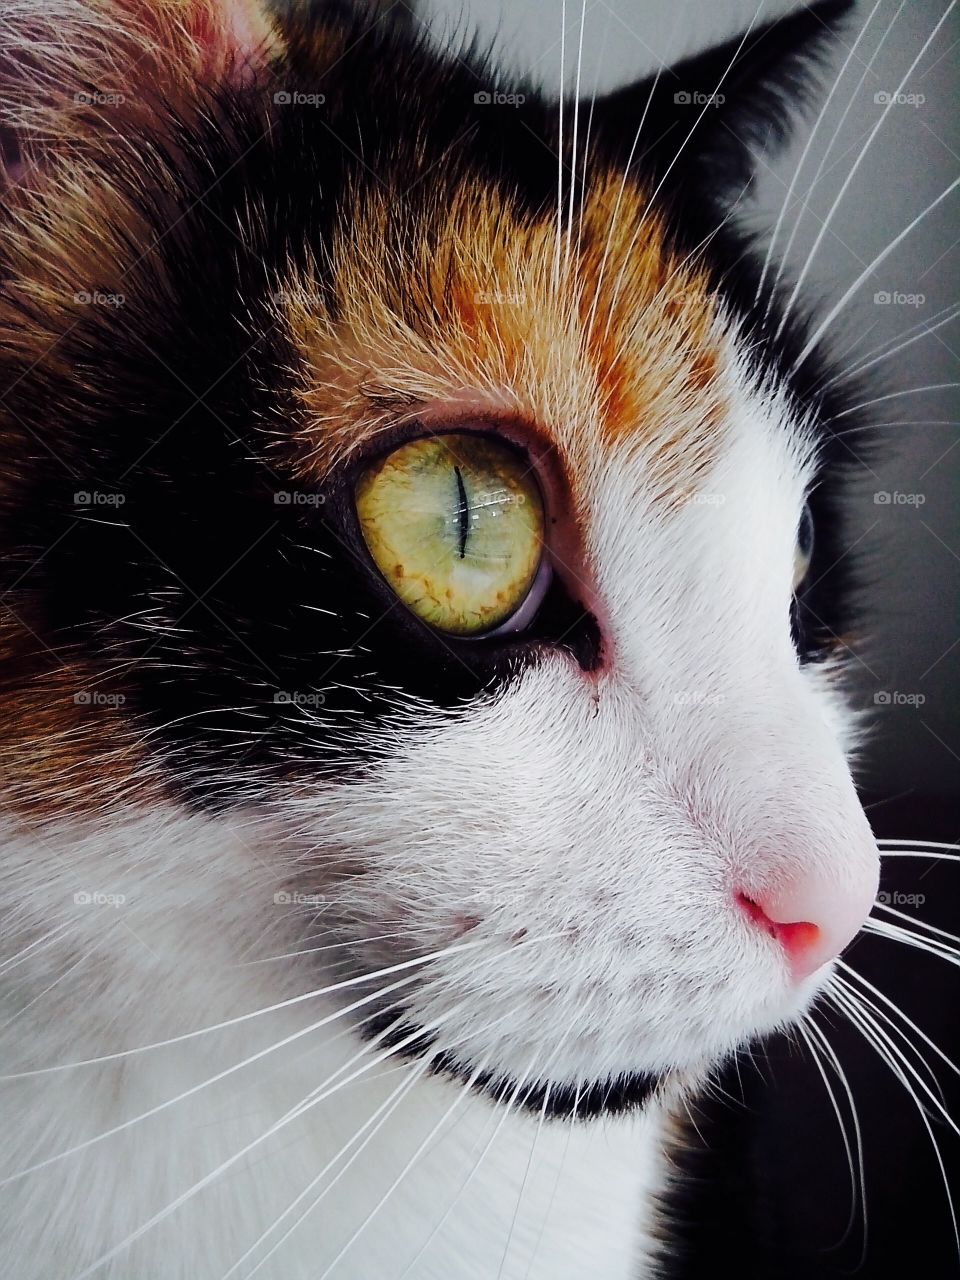 A cat staring out of the window